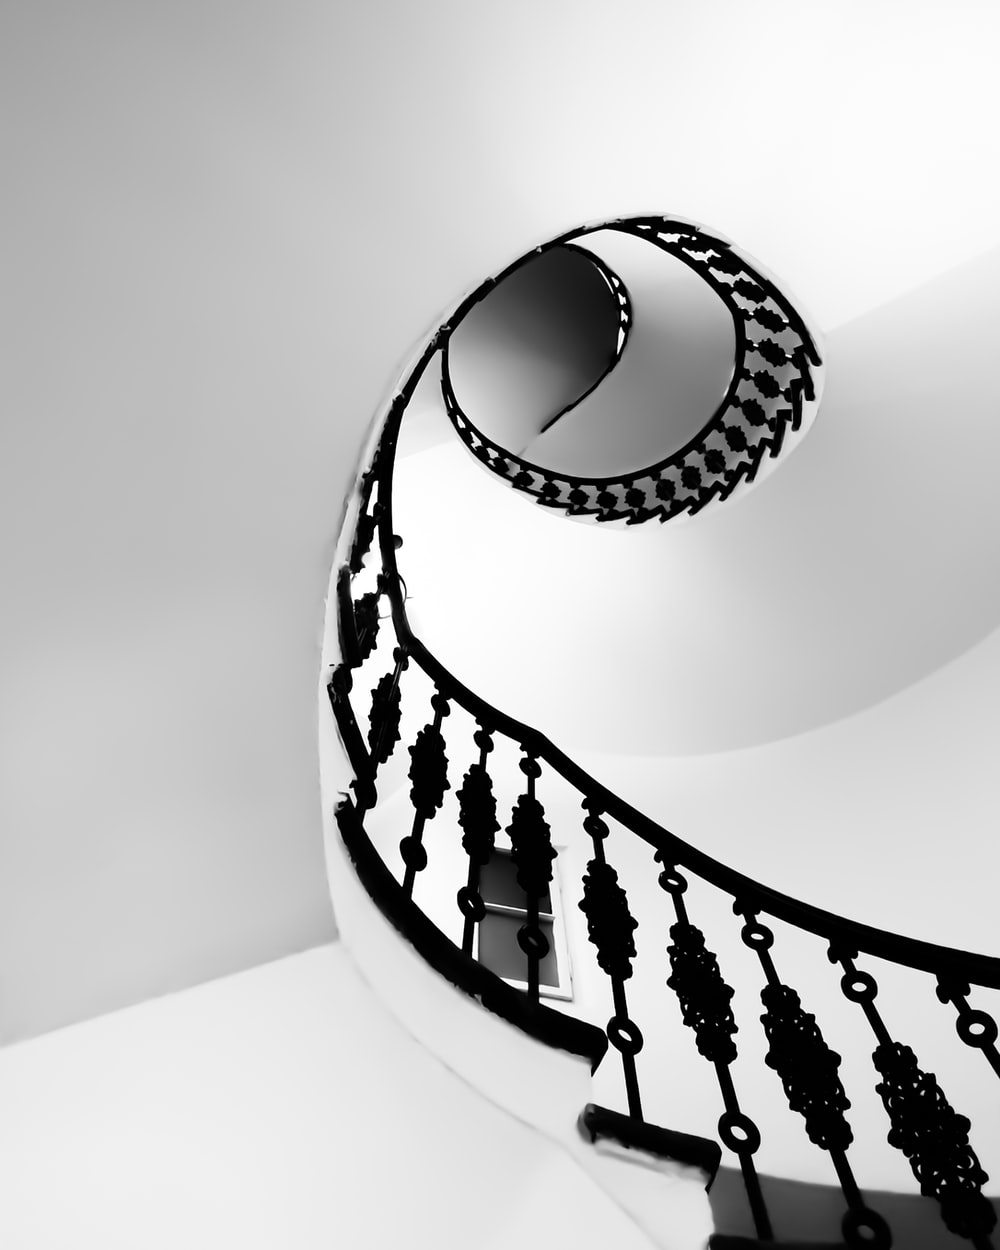 structural photography of spiral house stairs